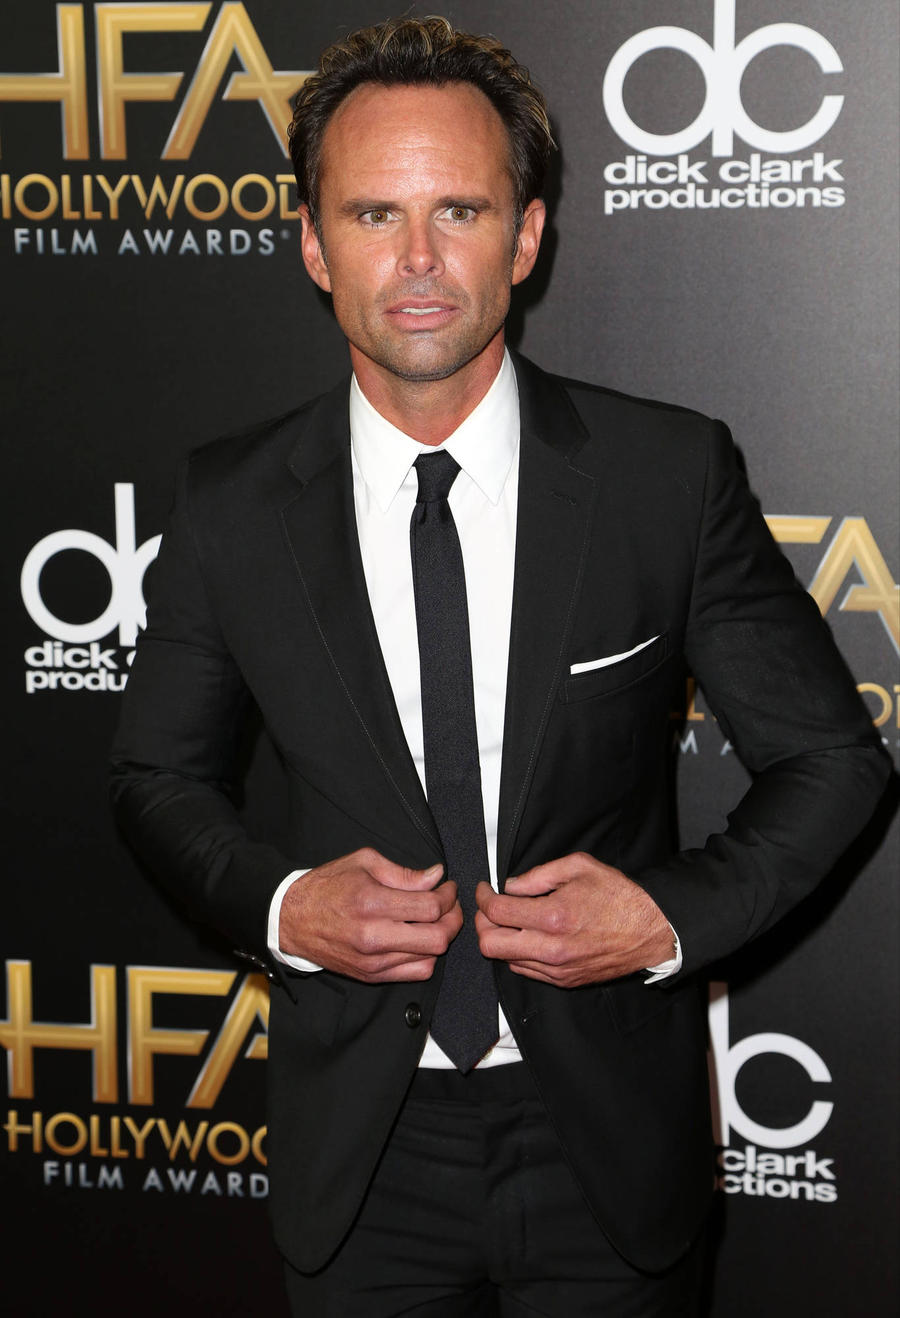 Walton Goggins In Talks To Play Villain In Tomb Raider Reboot